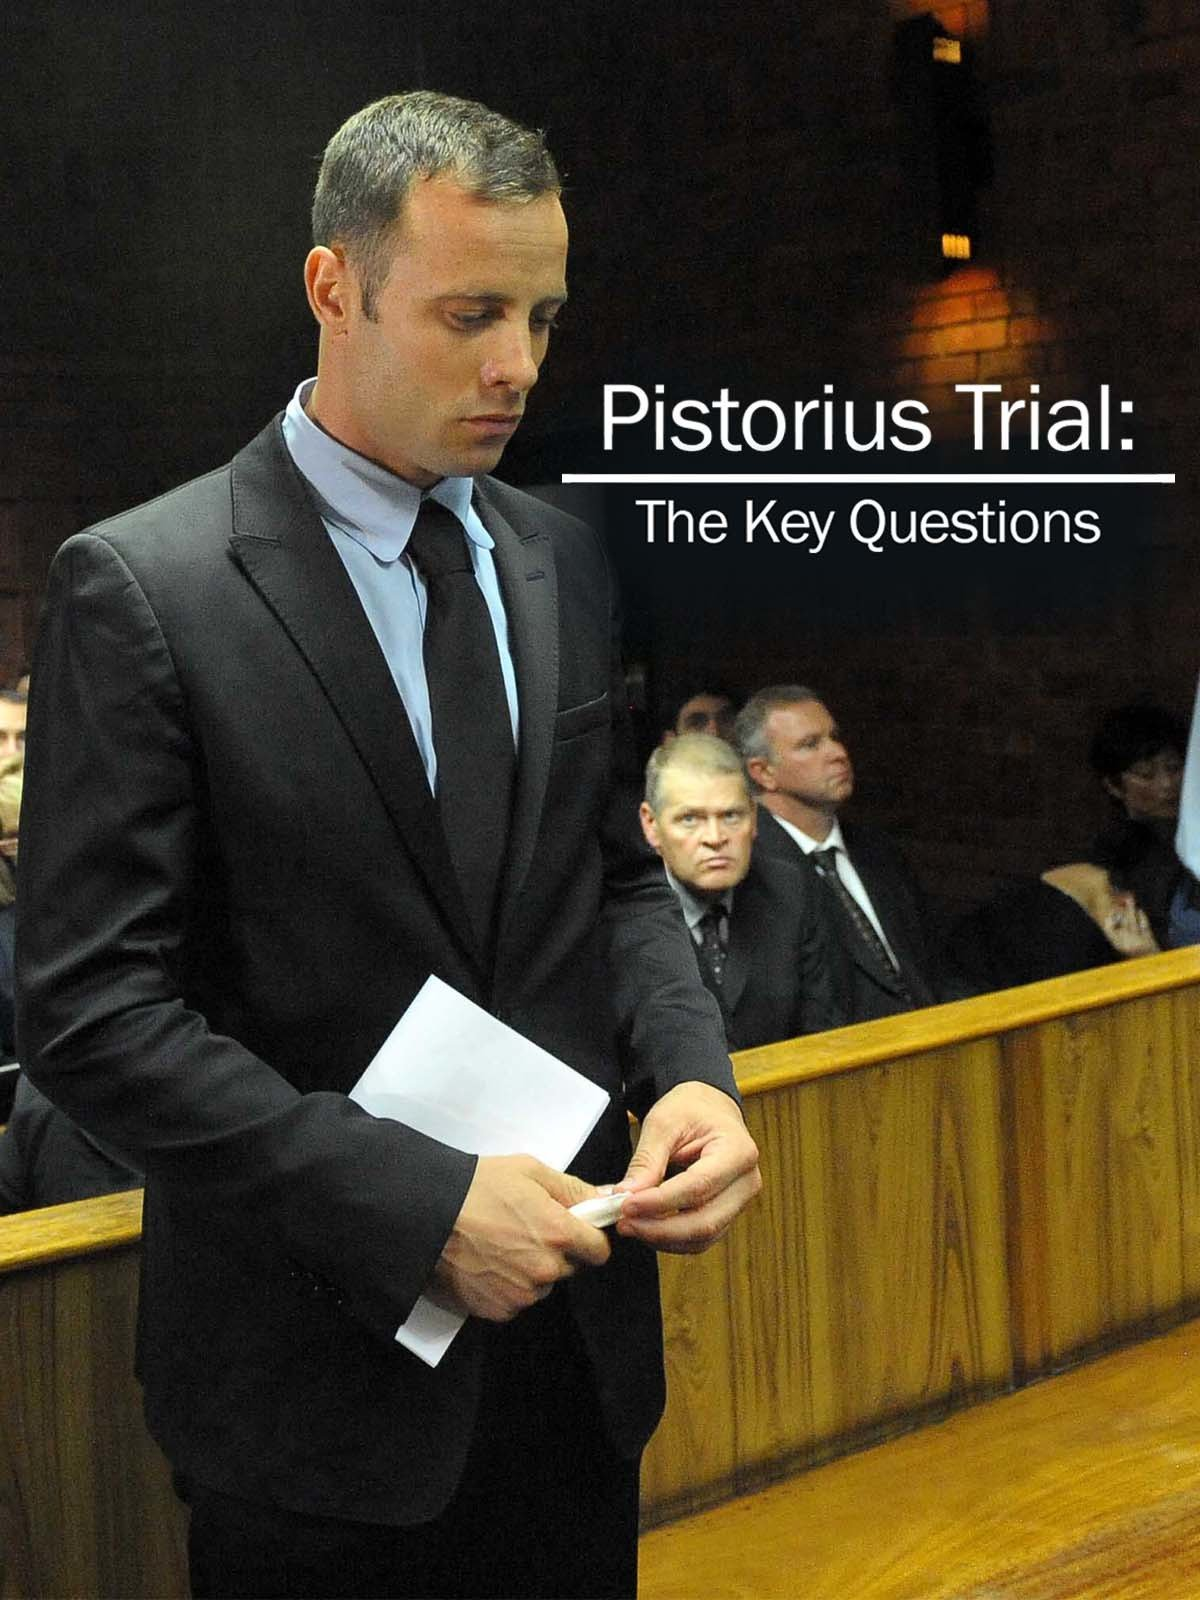 Pistorius Trial: The Key Questions on Amazon Prime Instant Video UK